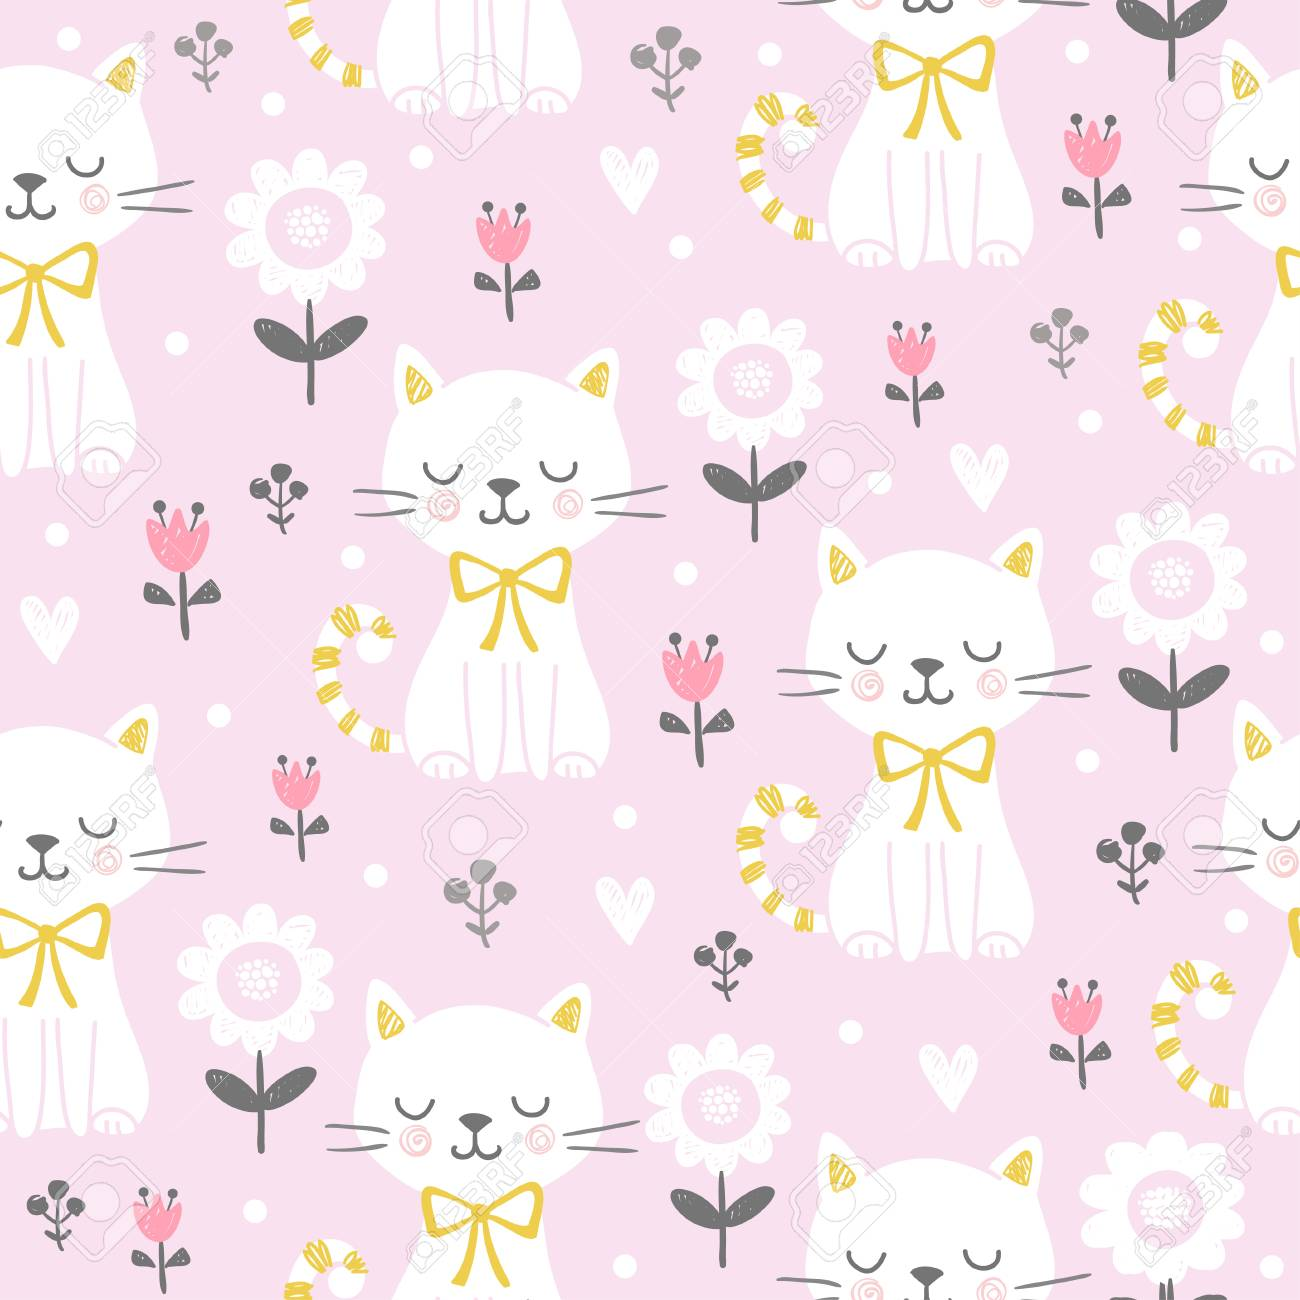 Vector seamless illustration with a cute cat on a pink background. Picture in the children's, cartoon style. - 111720174